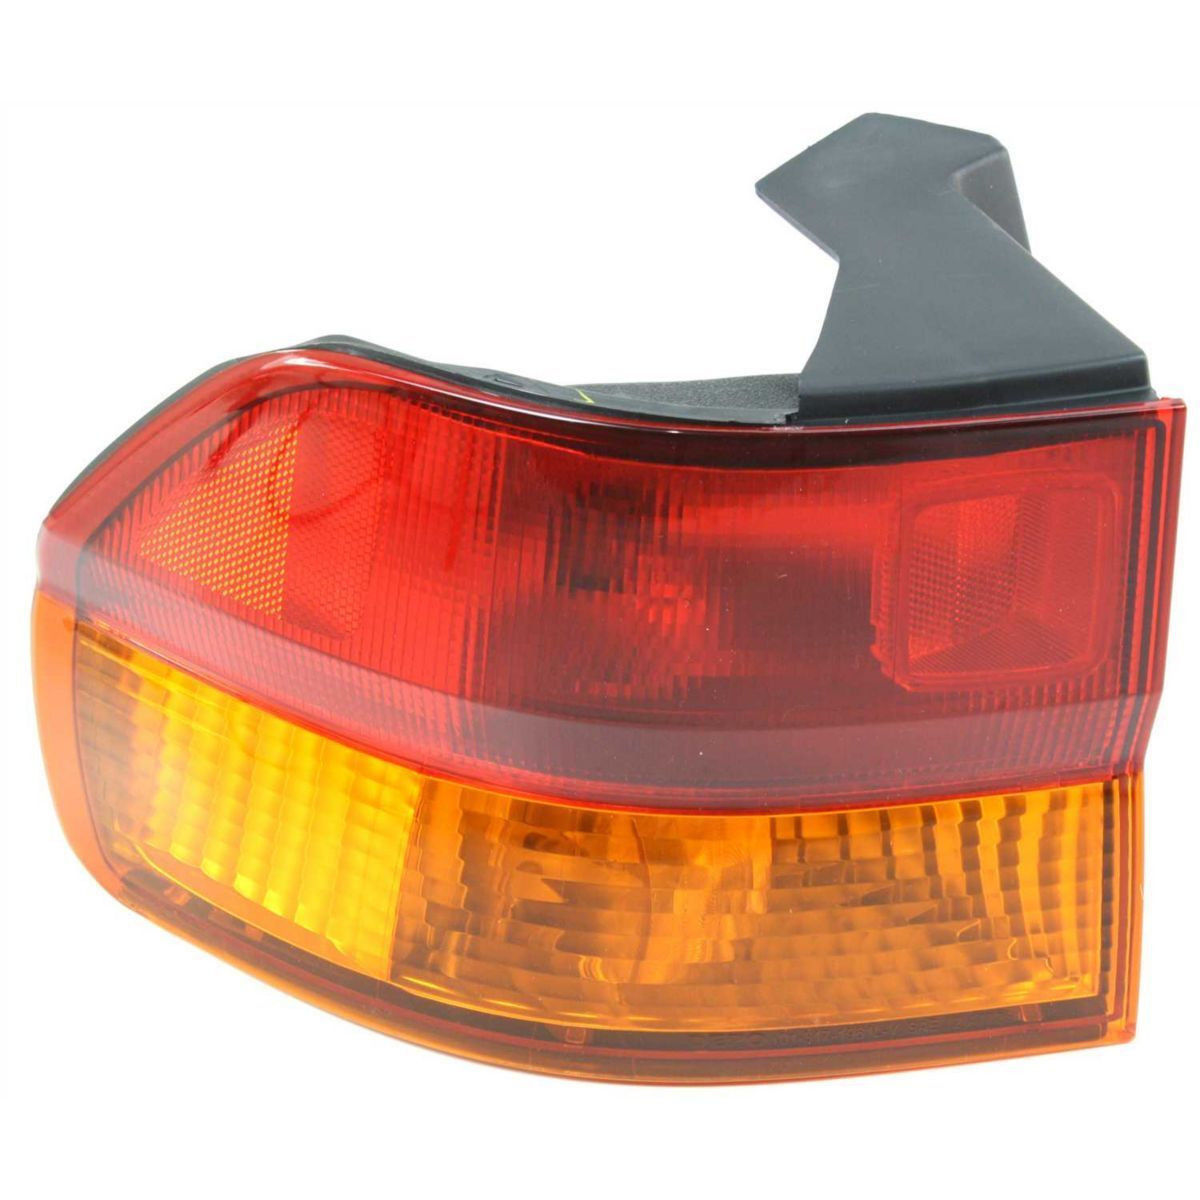 <b> New Tail Light Assembly Driver Side Fits 2002-2004 Honda Odyssey HO2800158 33506S0X003 </b>